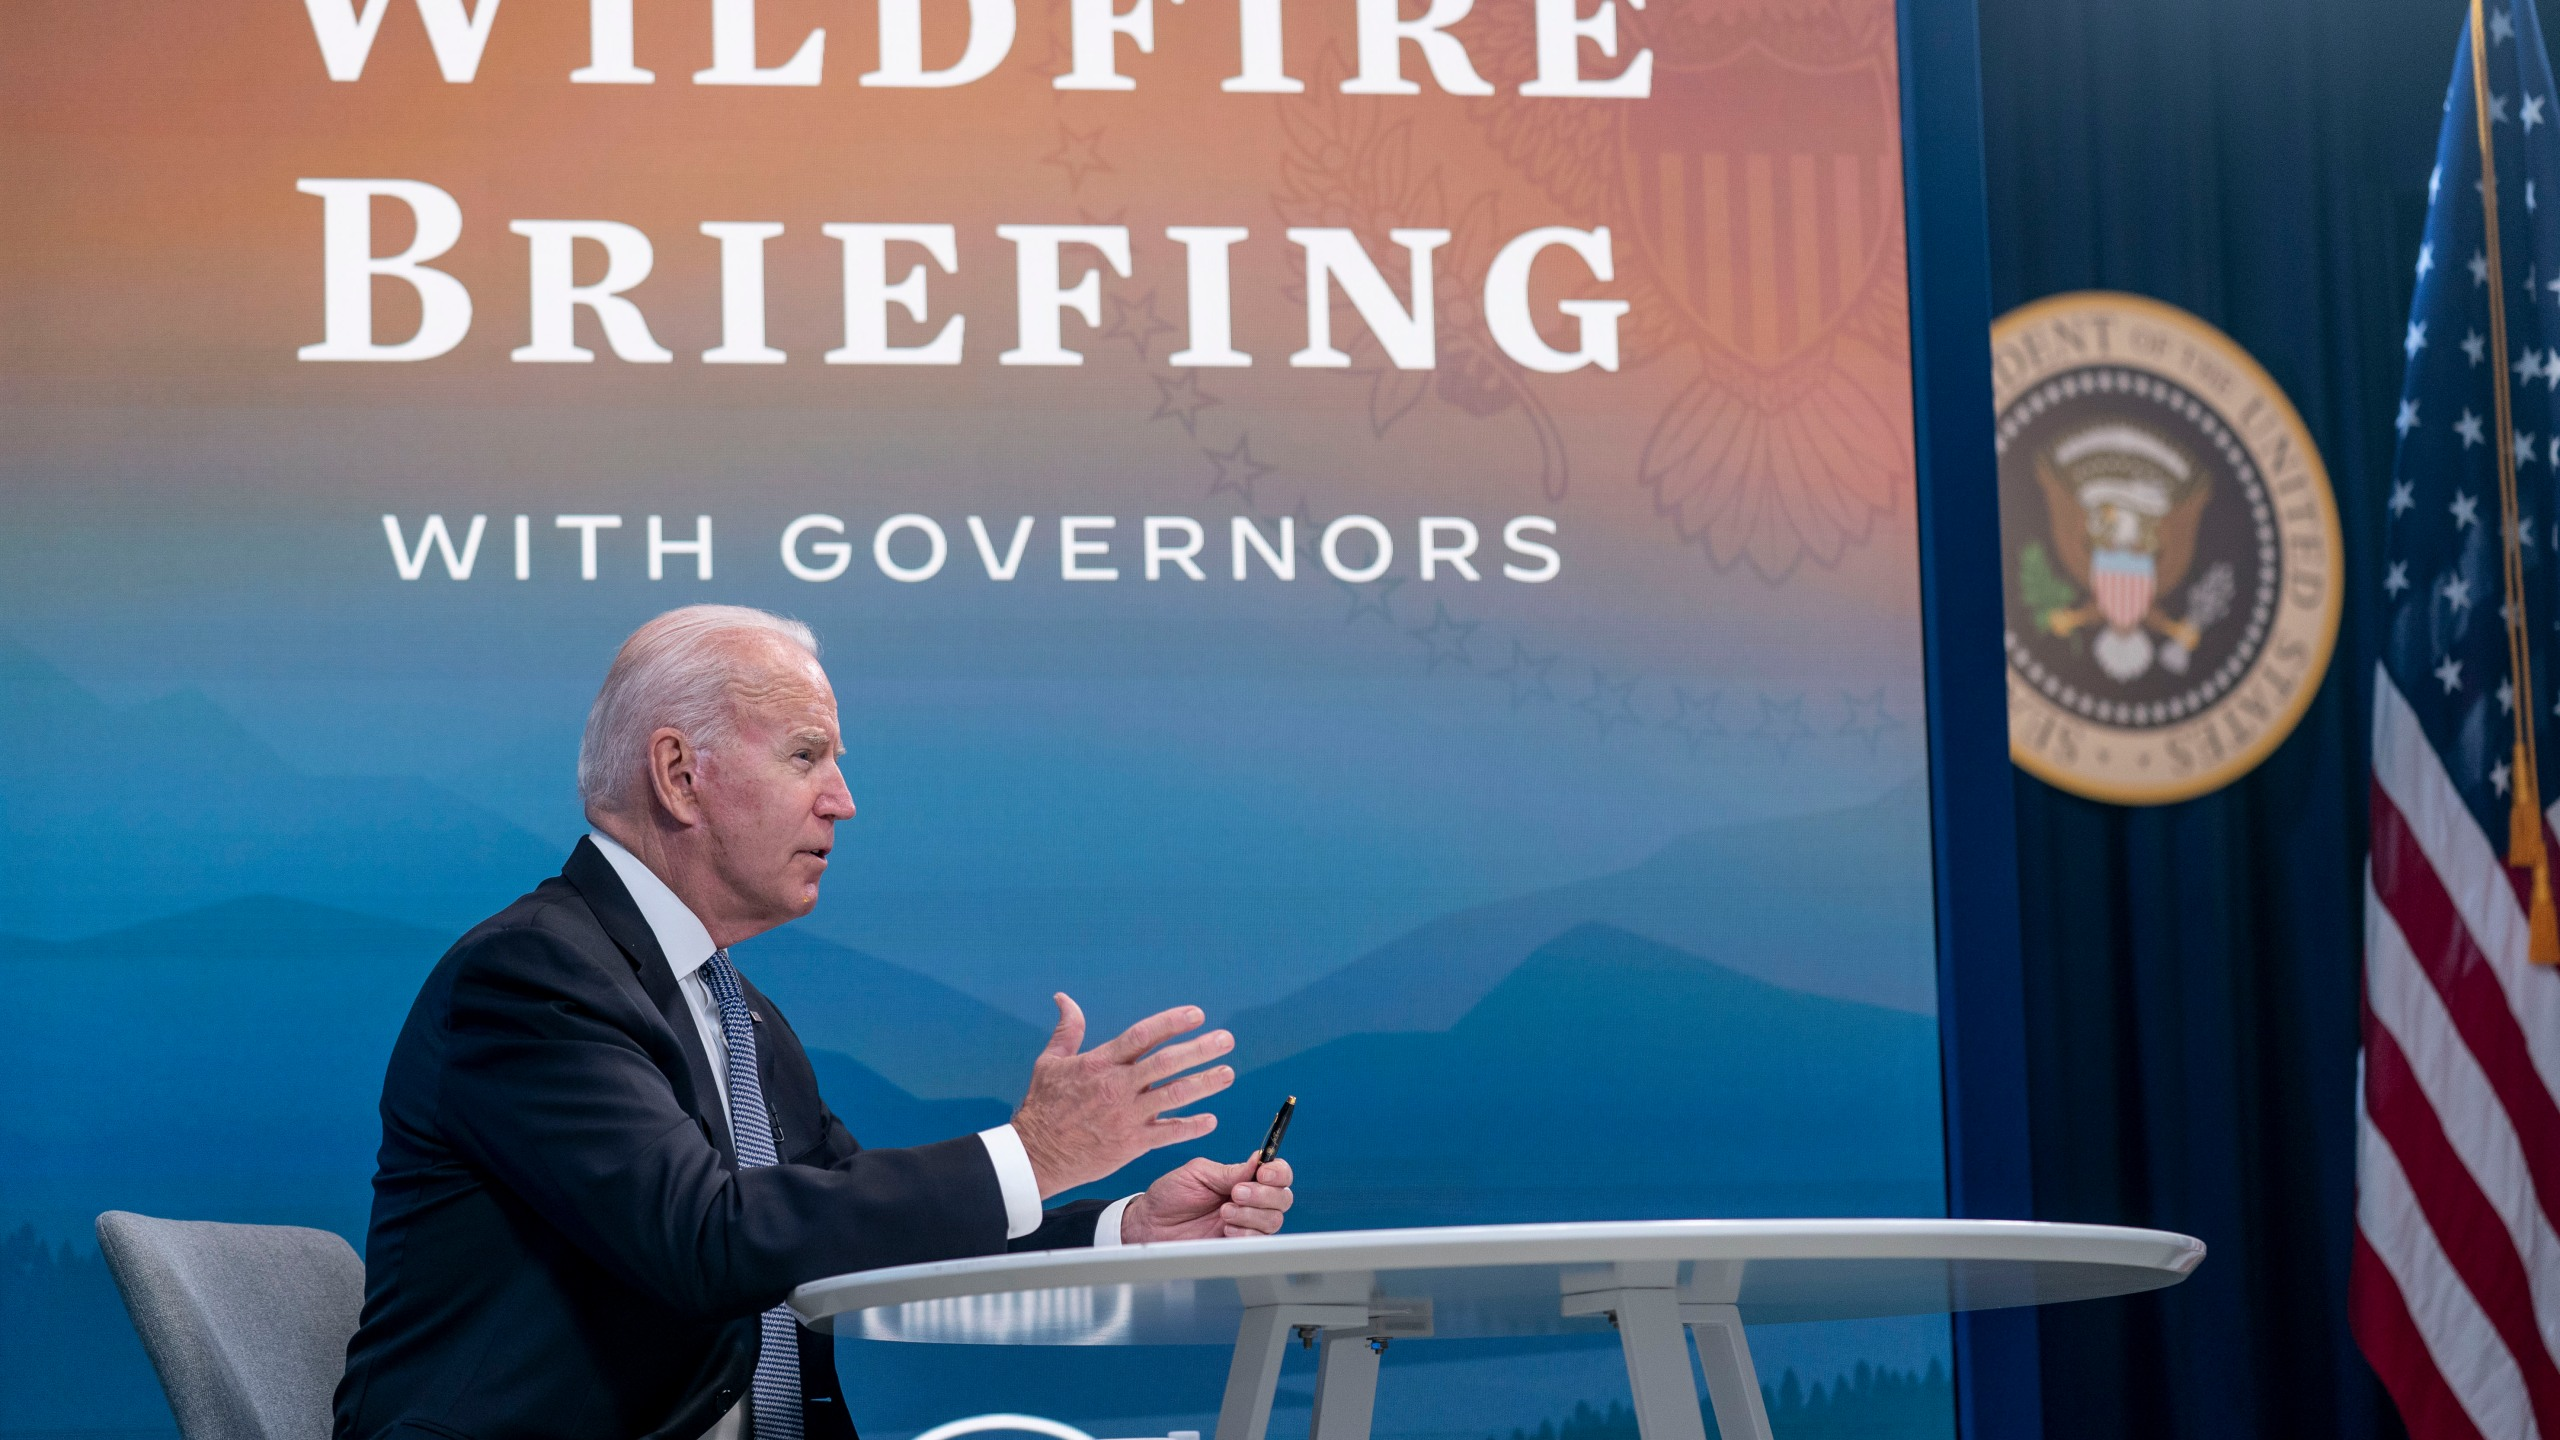 President Joe Biden speaks during a meeting with governors to discuss ongoing efforts to strengthen wildfire prevention, preparedness and response efforts, and hear firsthand about the ongoing impacts of the 2021 wildfire season in the South Court Auditorium in the Eisenhower Executive Office Building on the White House Campus in Washington, Friday, July 30, 2021. (AP Photo/Andrew Harnik)